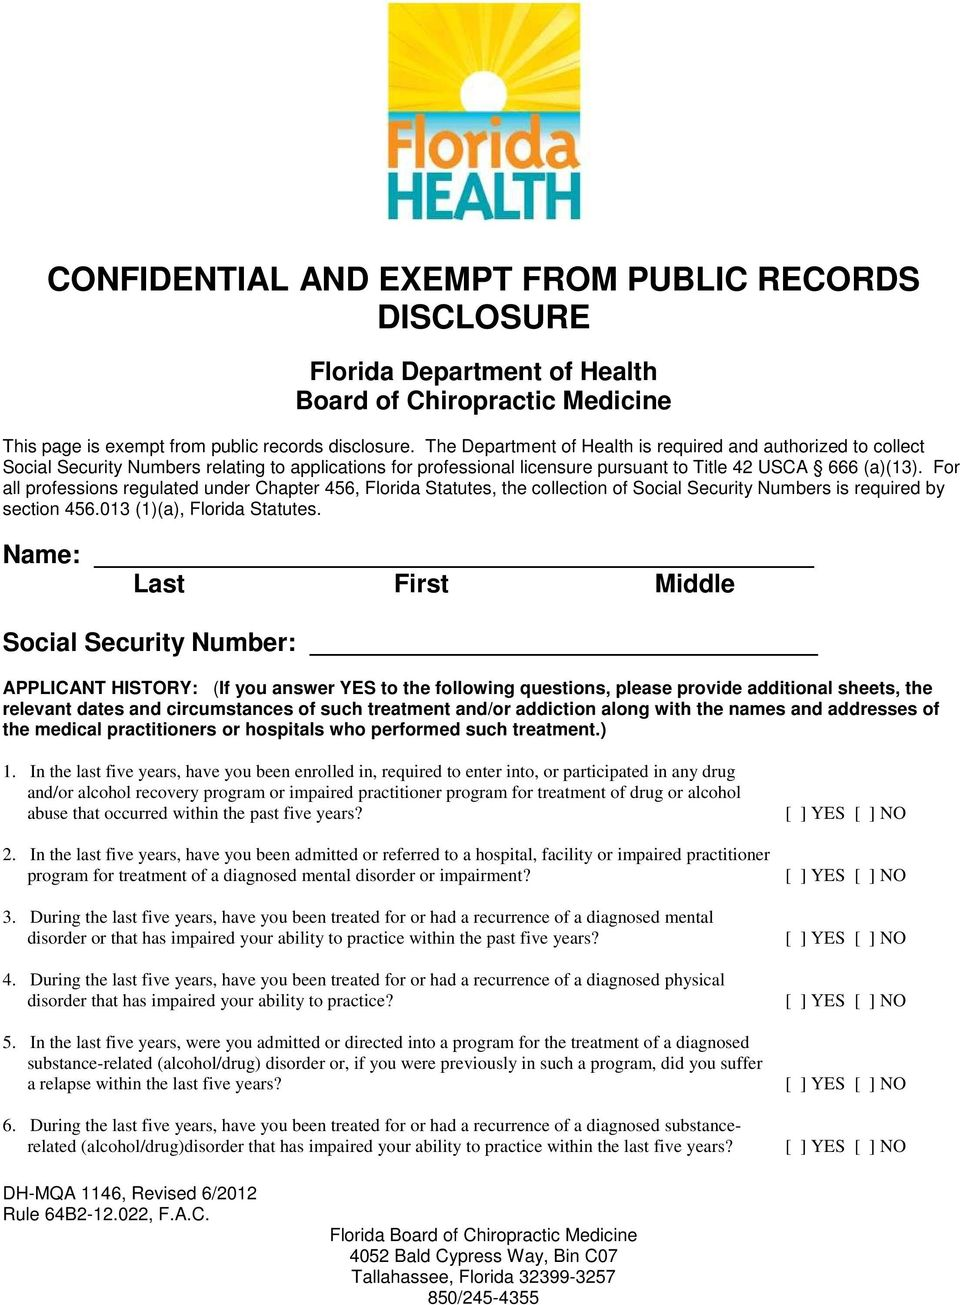 For all professions regulated under Chapter 456, Florida Statutes, the collection of Social Security Numbers is required by section 456.013 (1)(a), Florida Statutes.